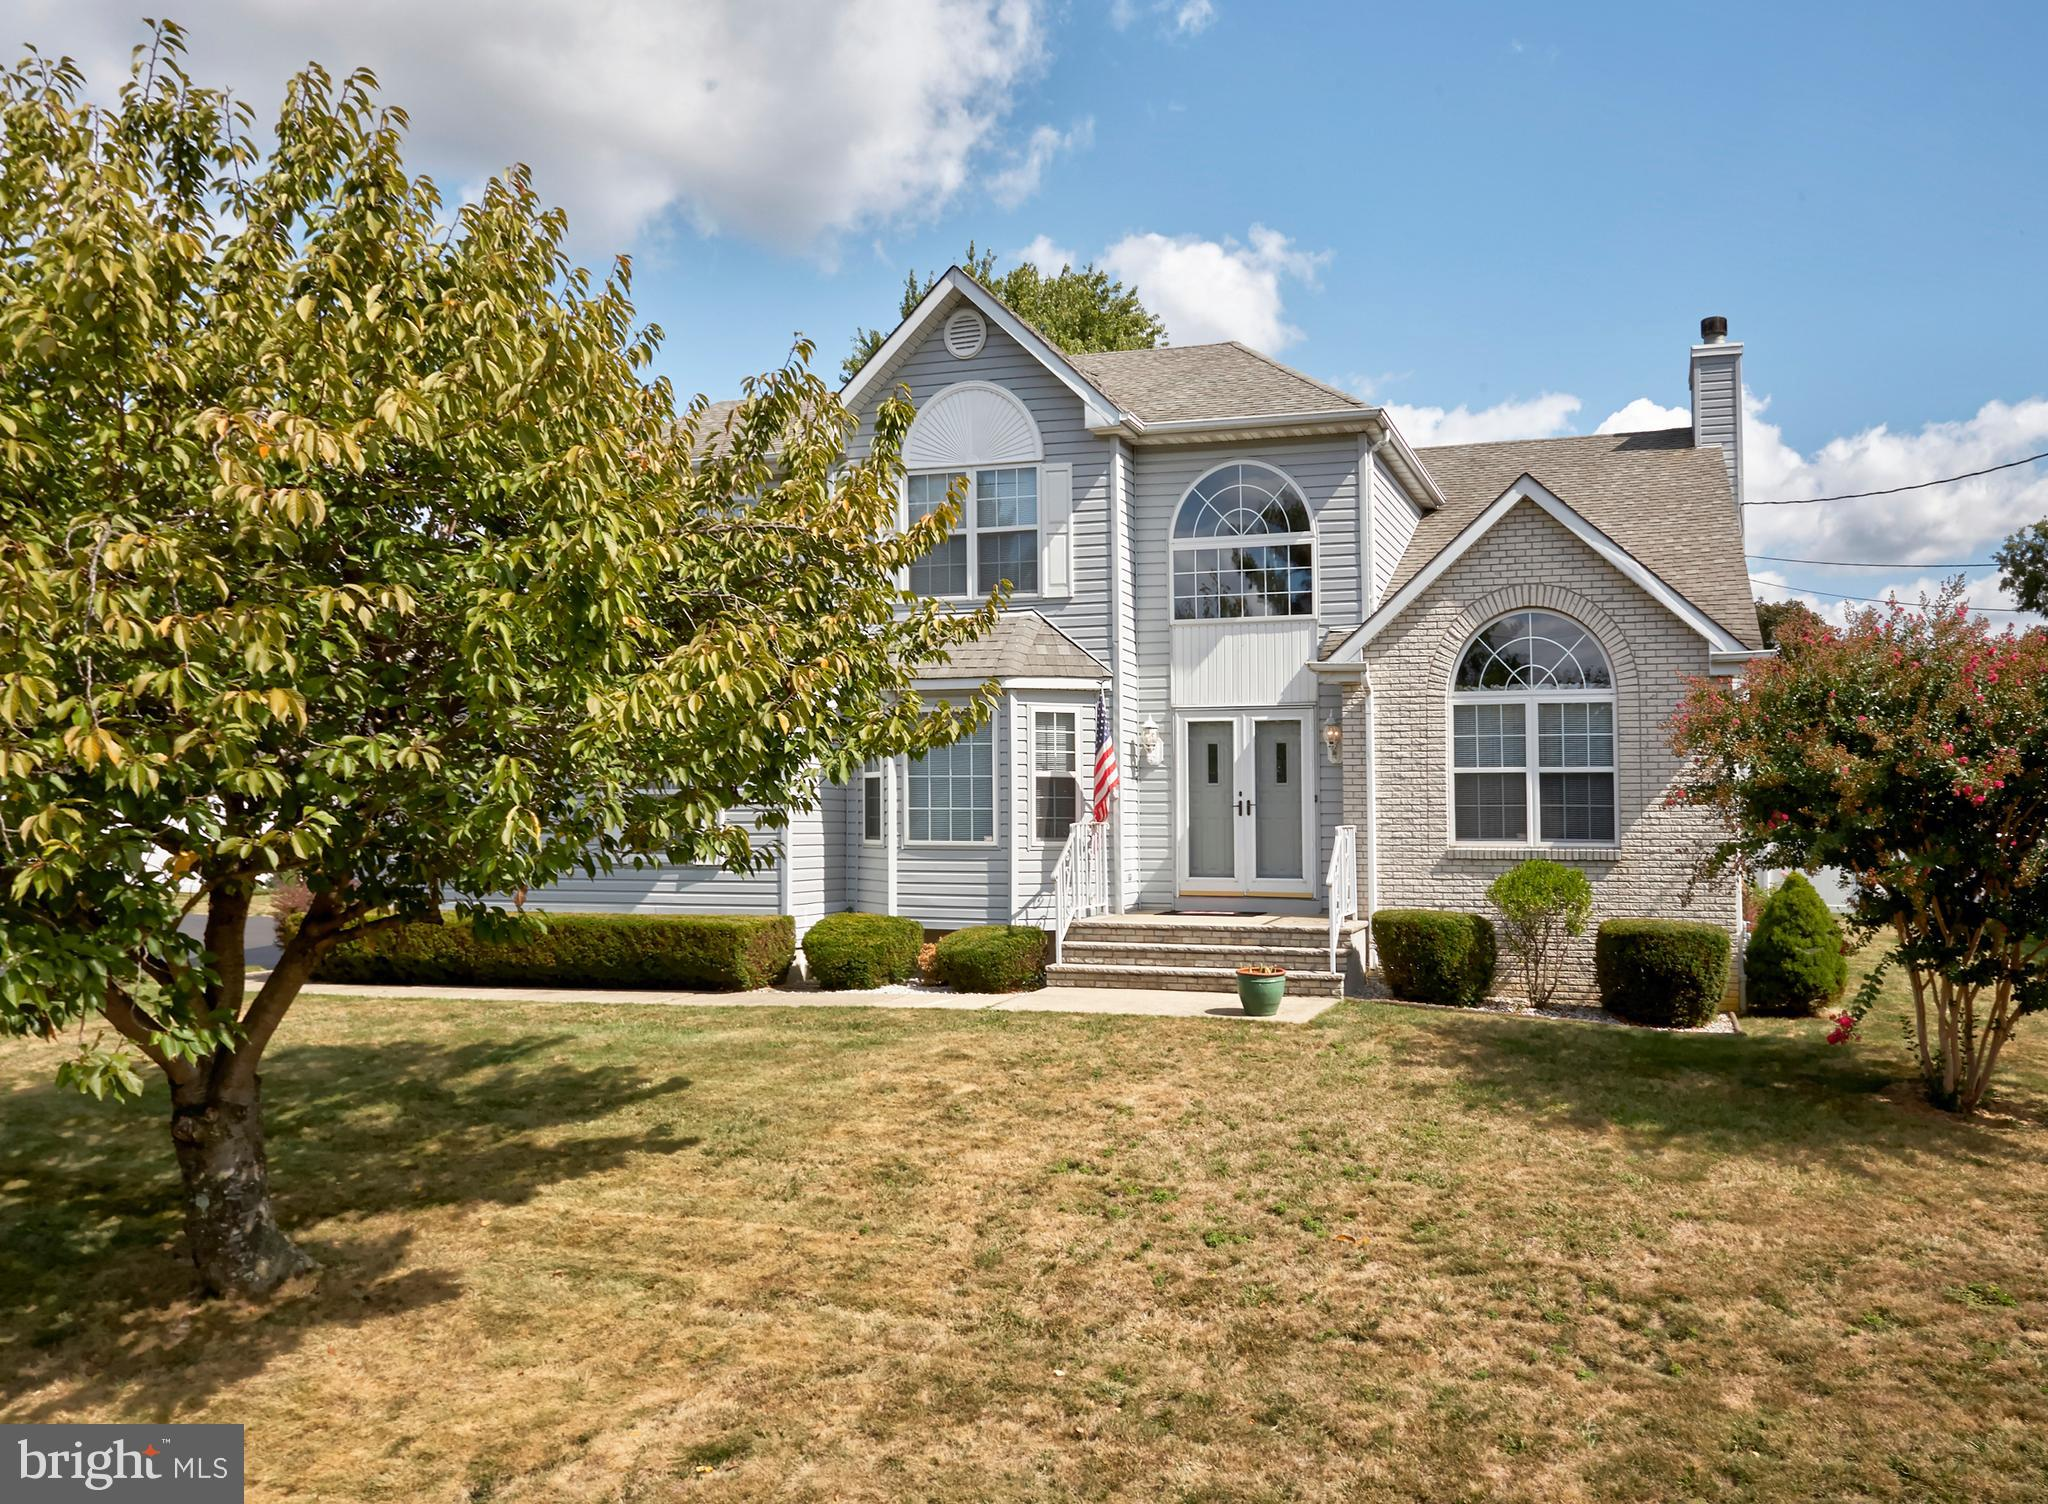 29 W CONSTITUTION DRIVE, BORDENTOWN, NJ 08505